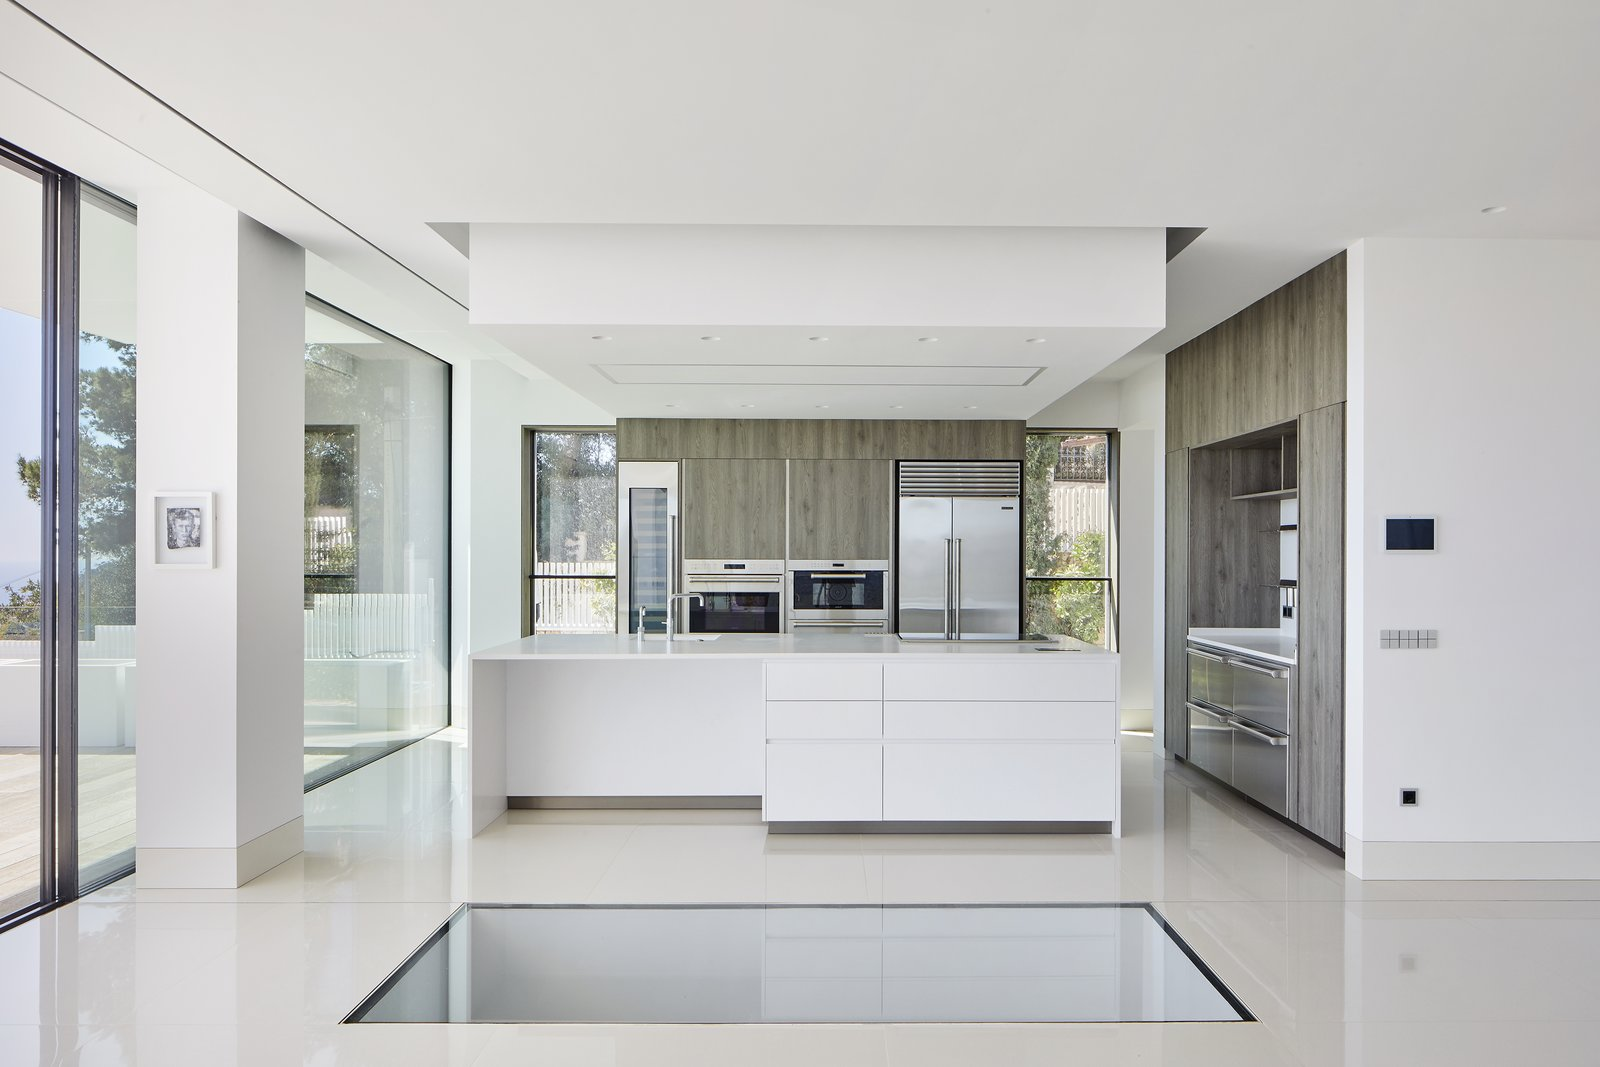 Kitchen, Wall Oven, White, Metal, Microwave, Wine Cooler, Drop In, Laminate, Ceiling, Granite, Range, Range Hood, Dishwasher, Ice Maker, Table, Beverage Center, Cooktops, Wood, Refrigerator, and Porcelain Tile Kitchen.  Best Kitchen Beverage Center Ceiling White Wall Oven Range Microwave Photos from 廚房